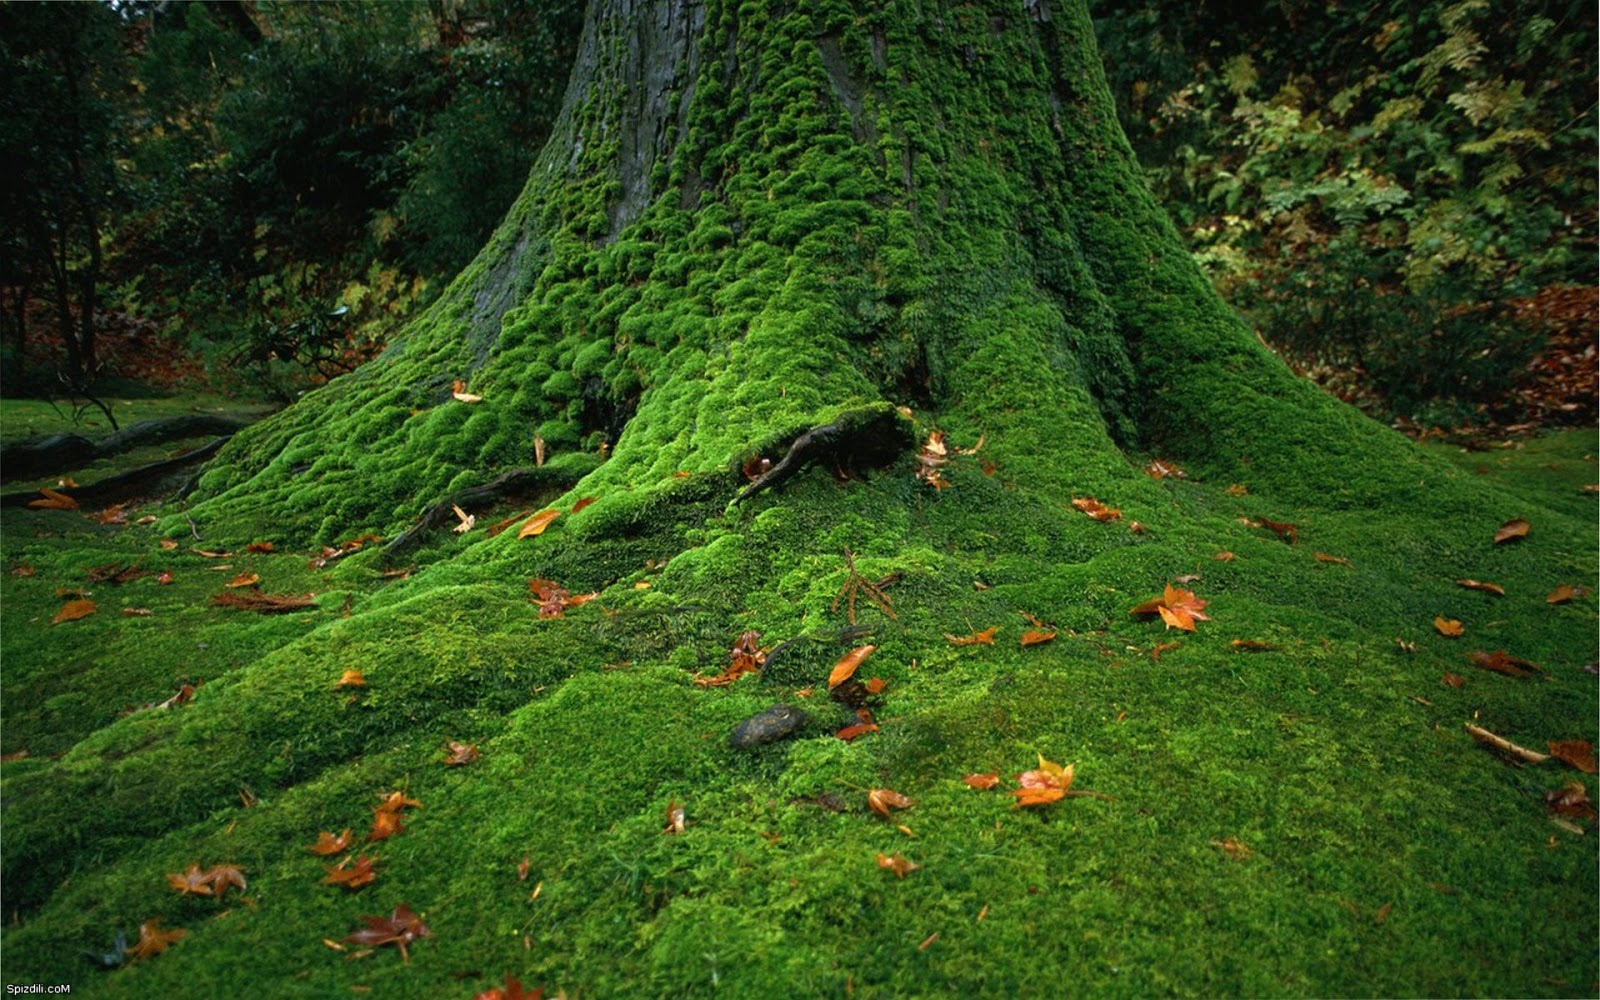 Central Wallpaper: Moss Covered Stones Trees HD Nature Wallpapers